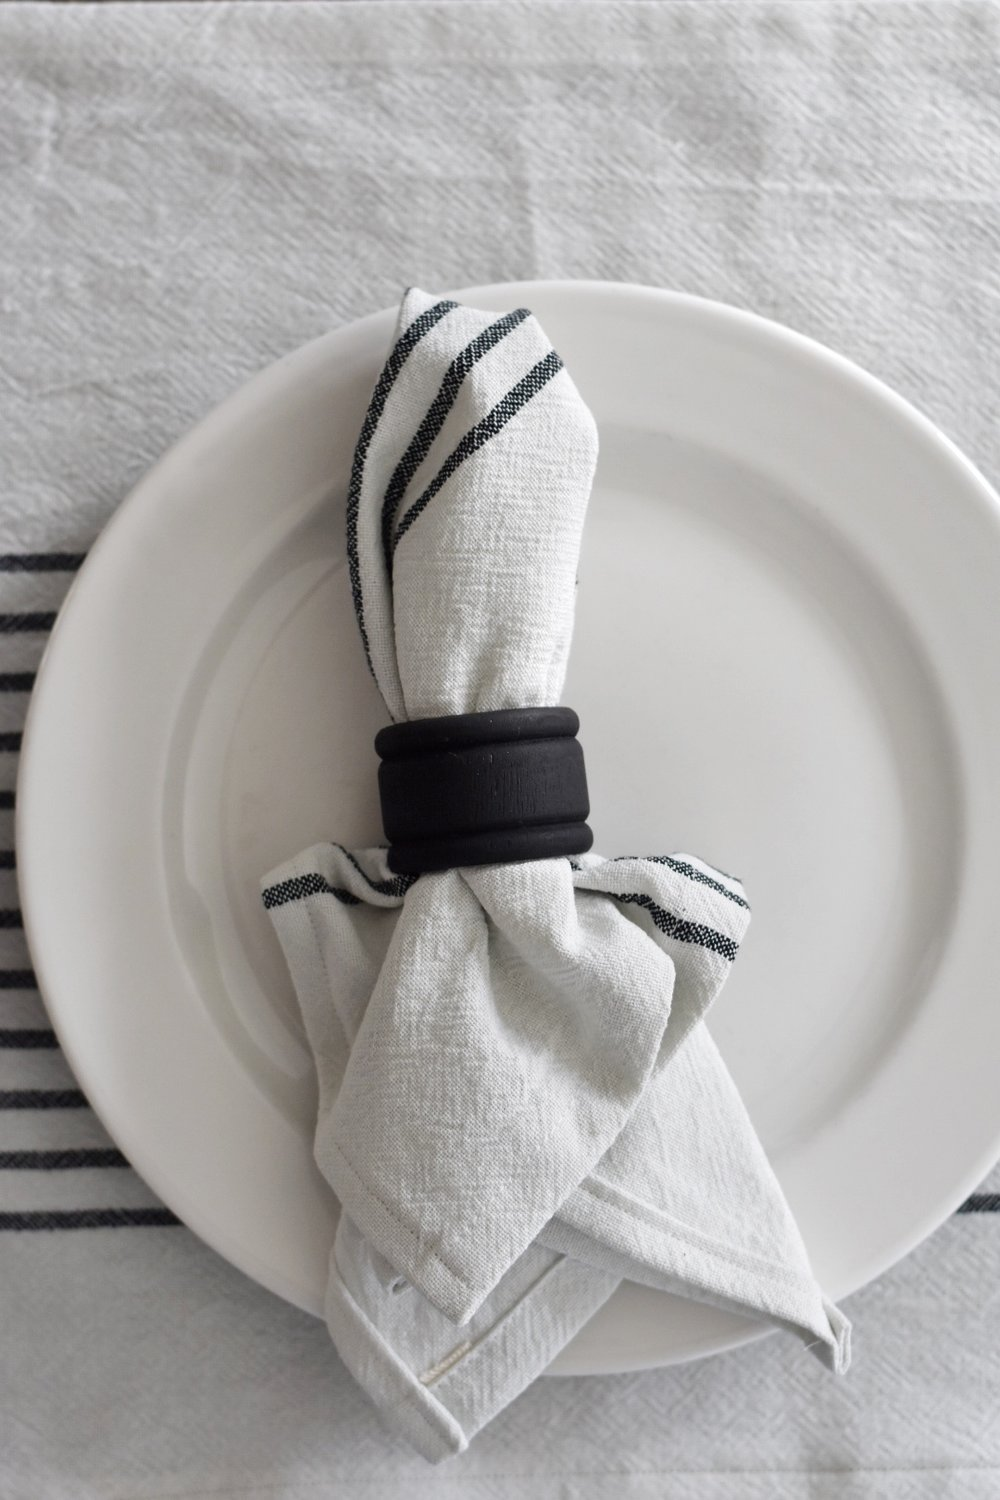 Rocky Hedge Farm - DIY Budget Friendly Cloth Napkins and Placemats